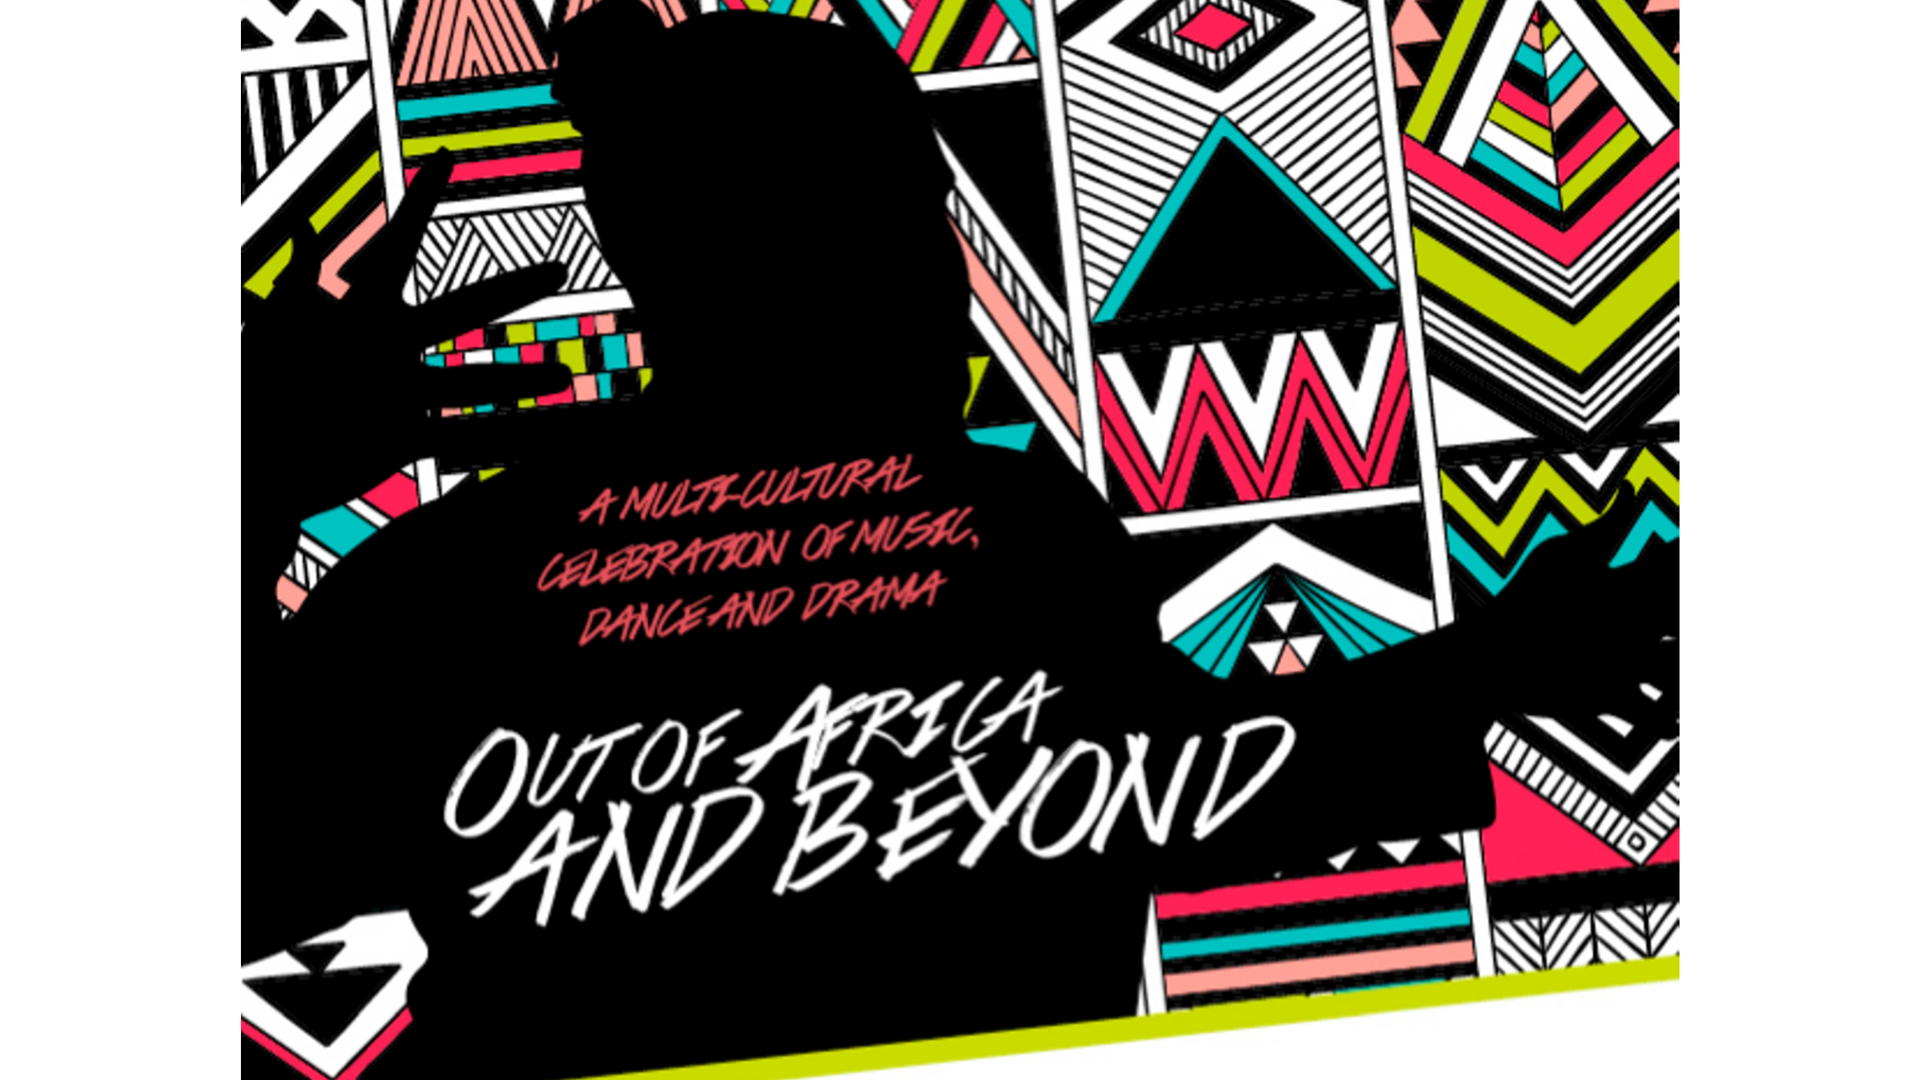 Out of Africa and Beyond — Page Banner